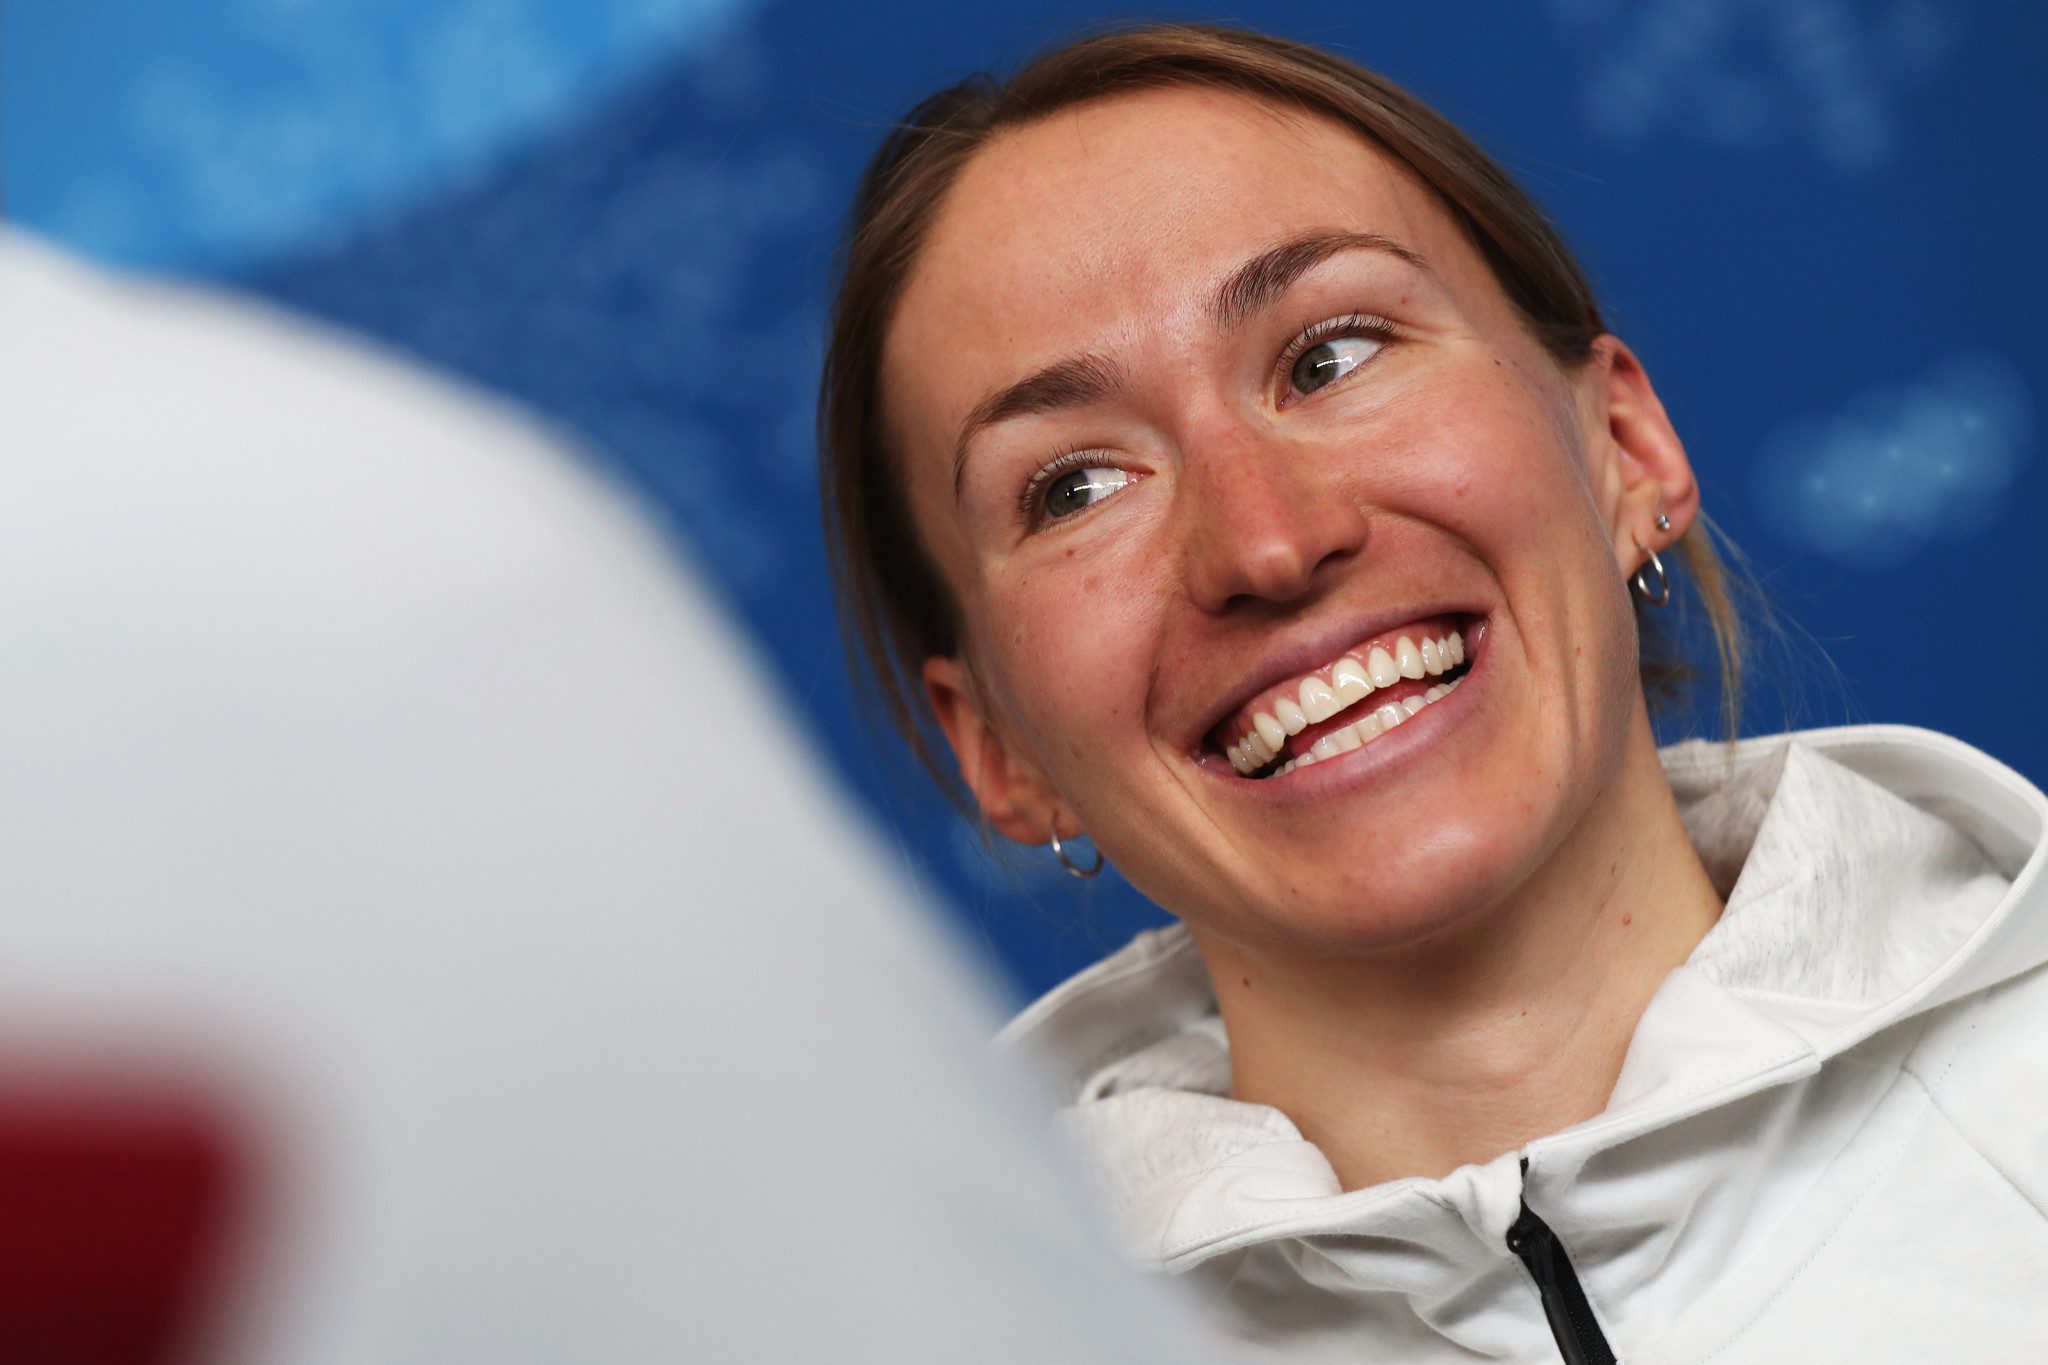 Two-time Winter Olympian Caldwell-Hamilton retires from cross-country skiing